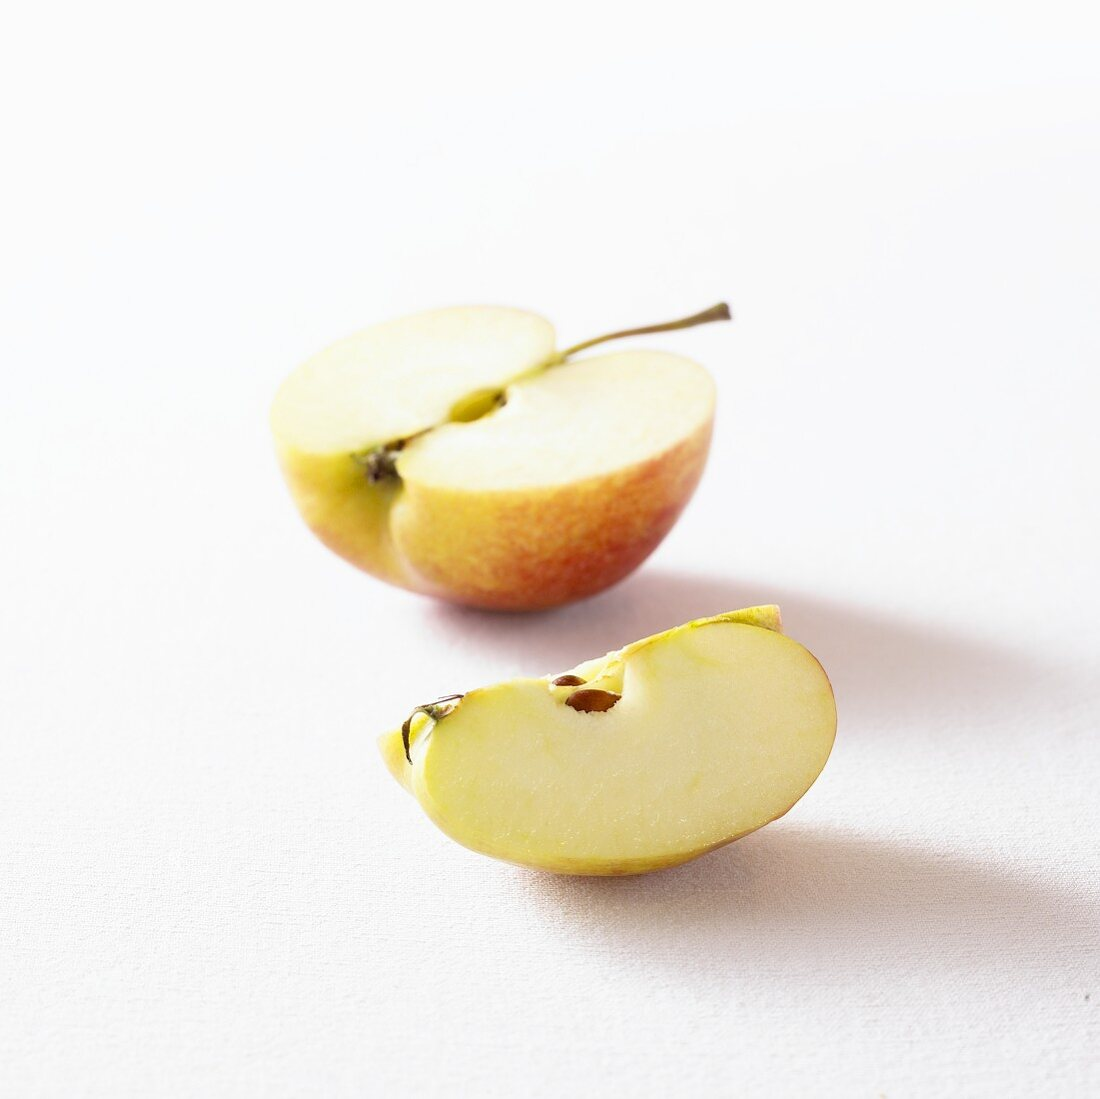 Half an apple and a wedge of apple